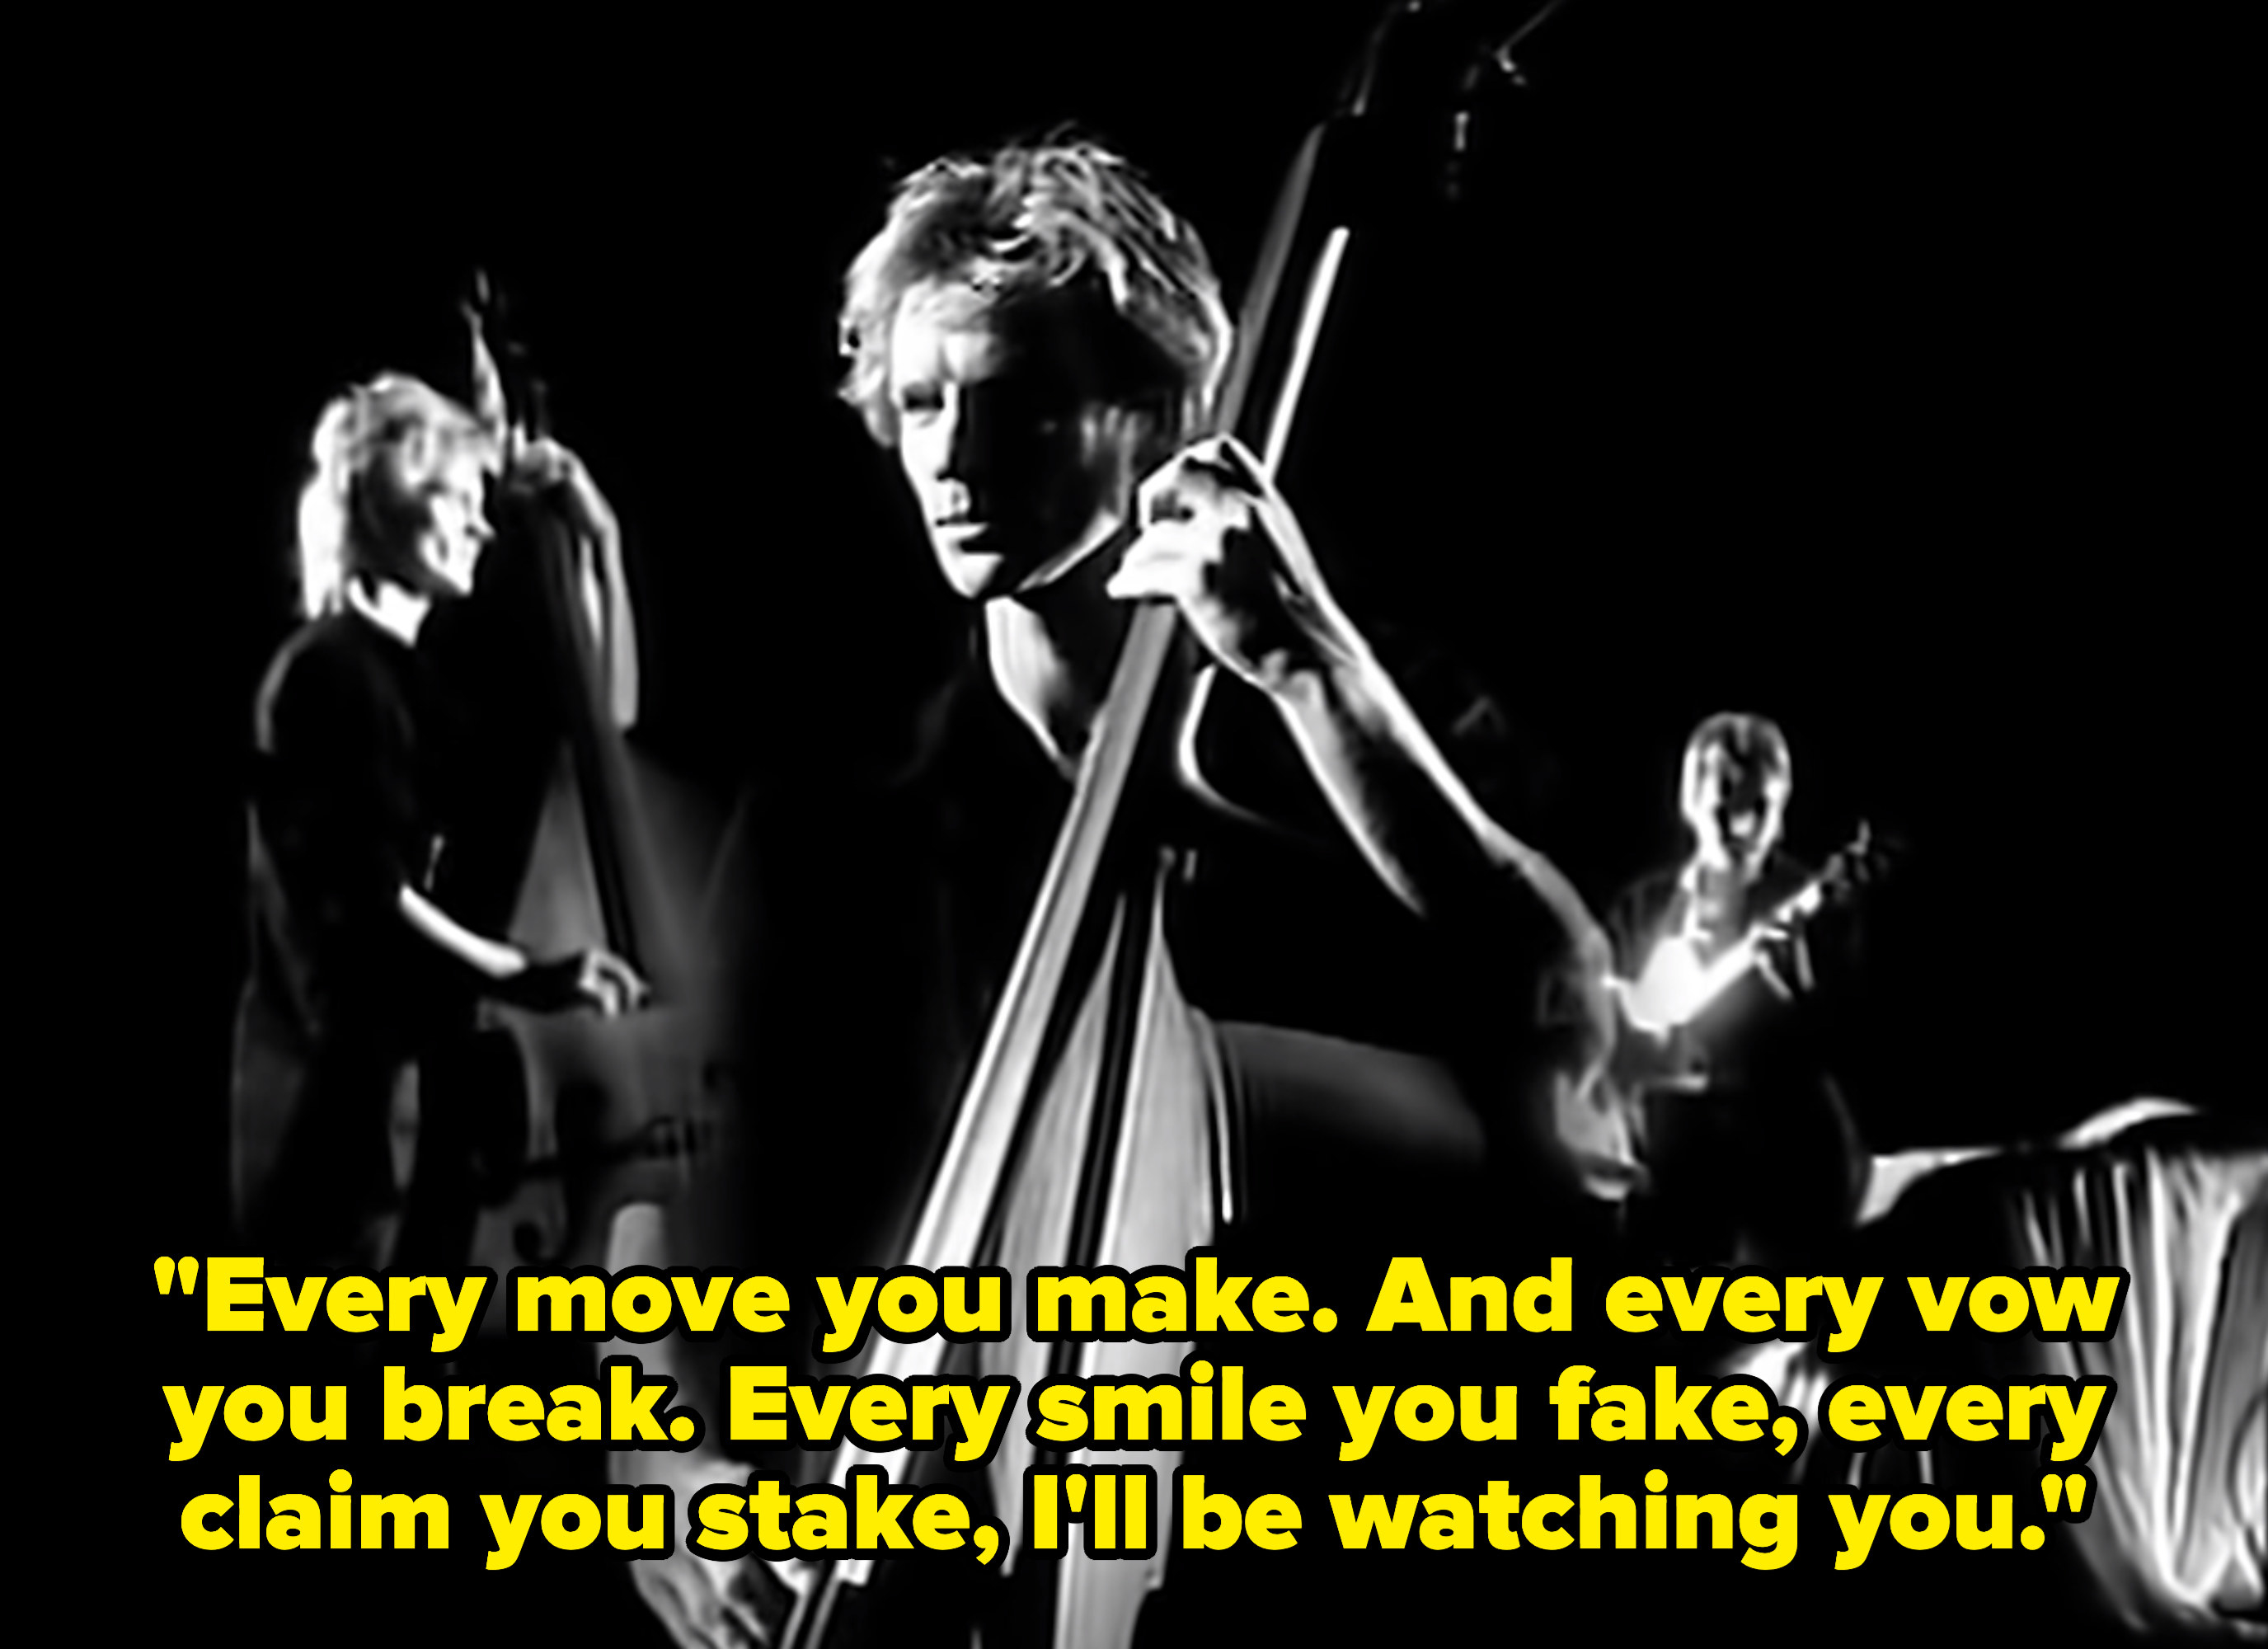 """Sting singing, """"Every move you make. And every vow you break. Every smile you fake, every claim you stake, I'll be watching you"""""""